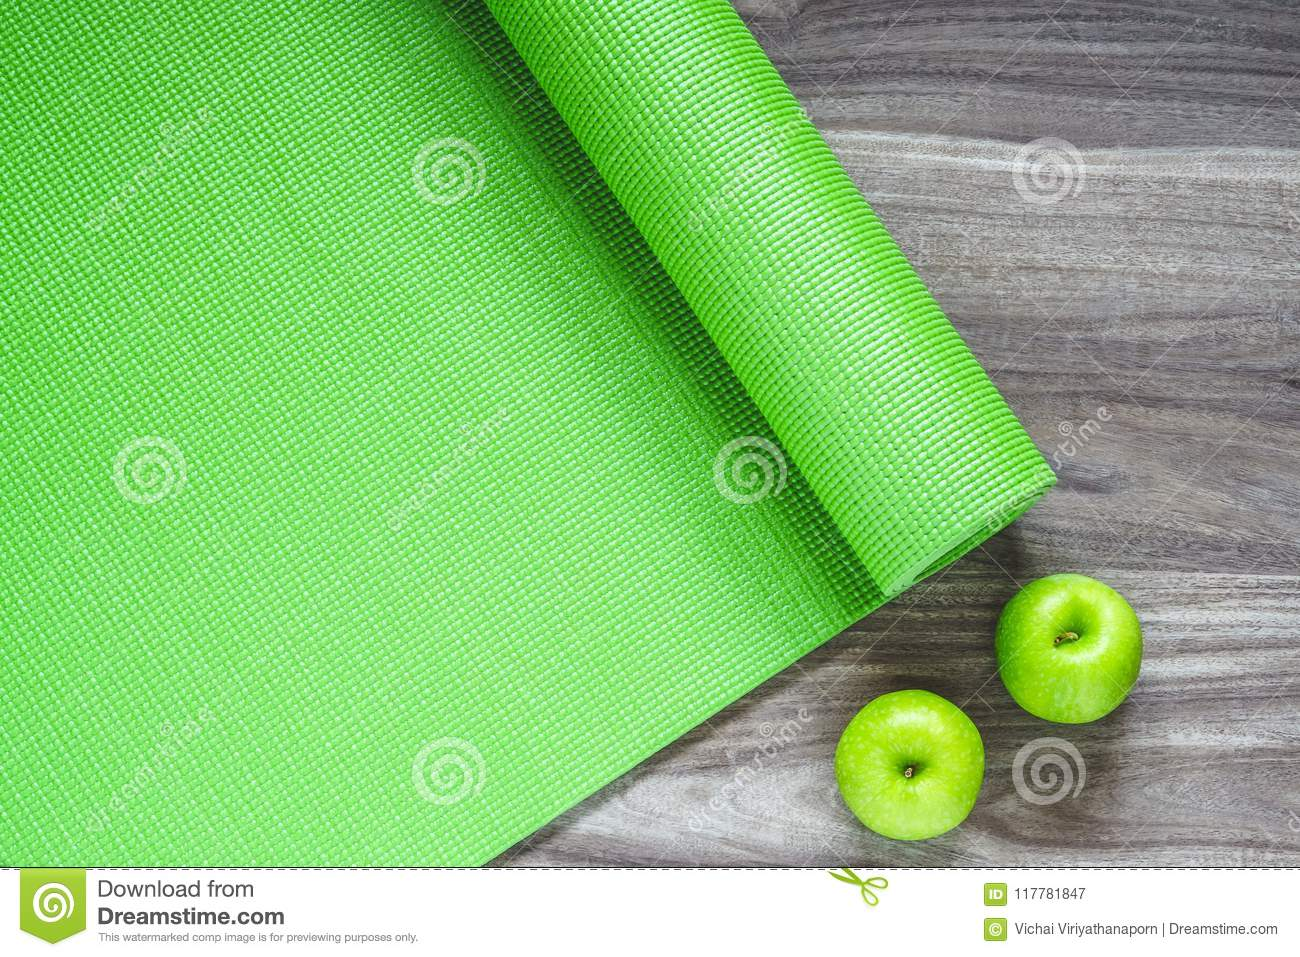 d777fa45a7e8f Green yoga mat on a wooden background with green apples, Top View with copy  space. Active healthy lifestyle background concept.